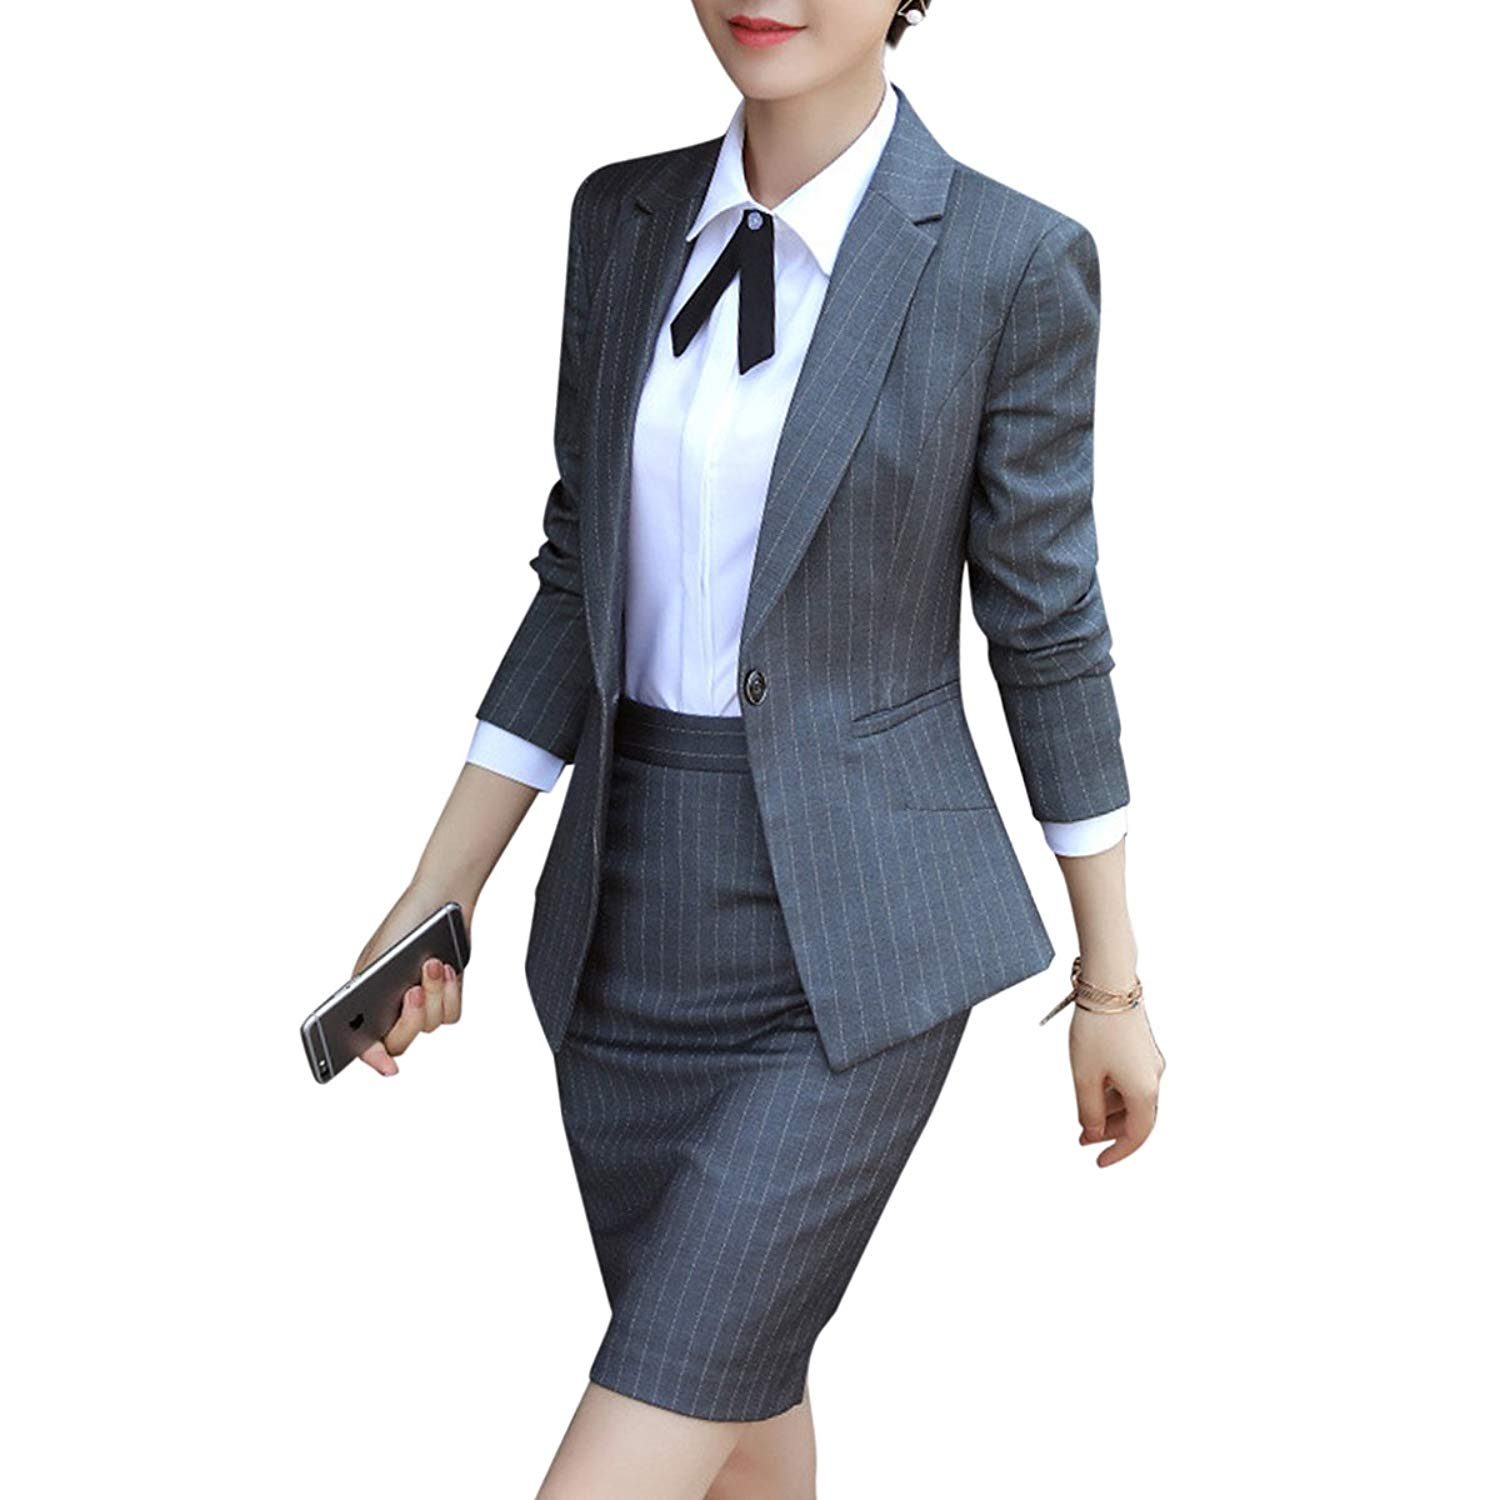 338699cd9cc Get Quotations · YUNCLOS Women s 2 Piece Business Skirt Suit Set Office  Lady Slim Fit Stripes Blazer and Skirt